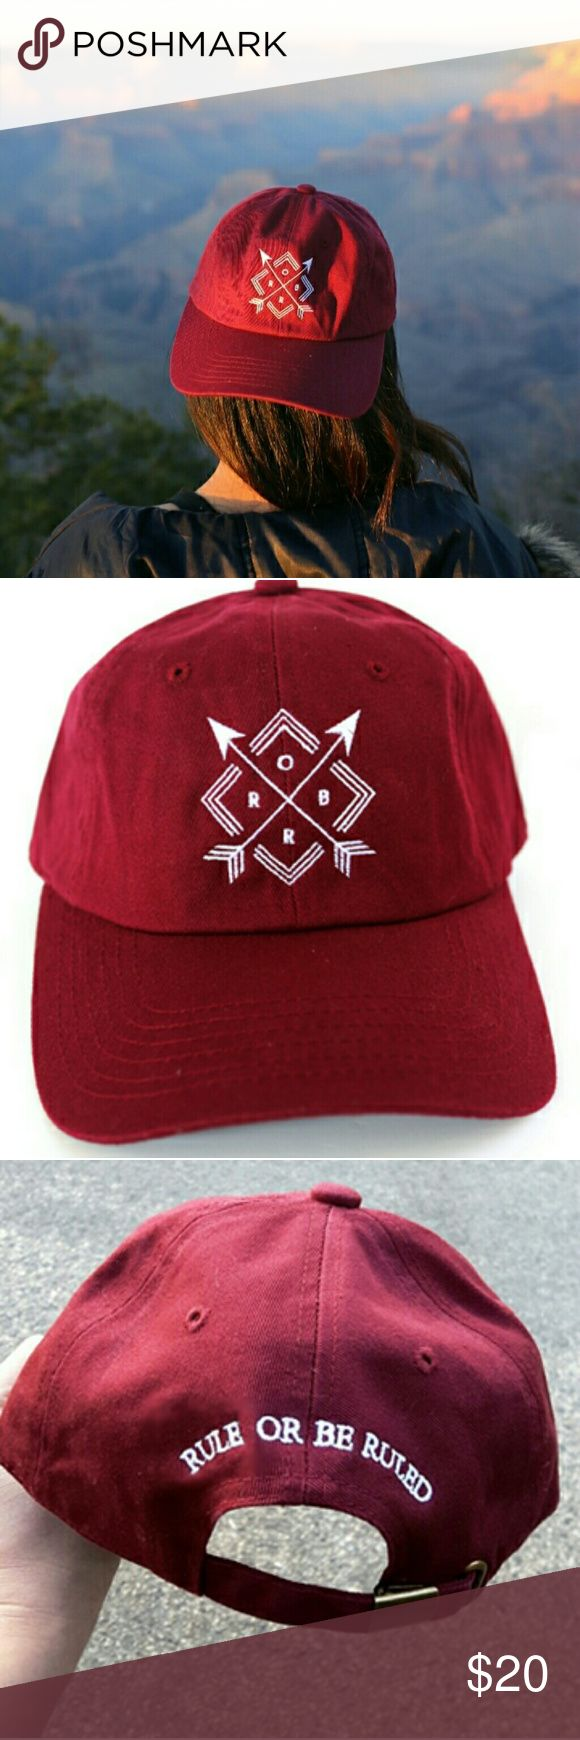 New Rule or be Ruled dad hat This is a new burgundy dad hat with a very sleek and modern design. www.ruleorberuledclothing.com Rule or be Ruled Accessories Hats